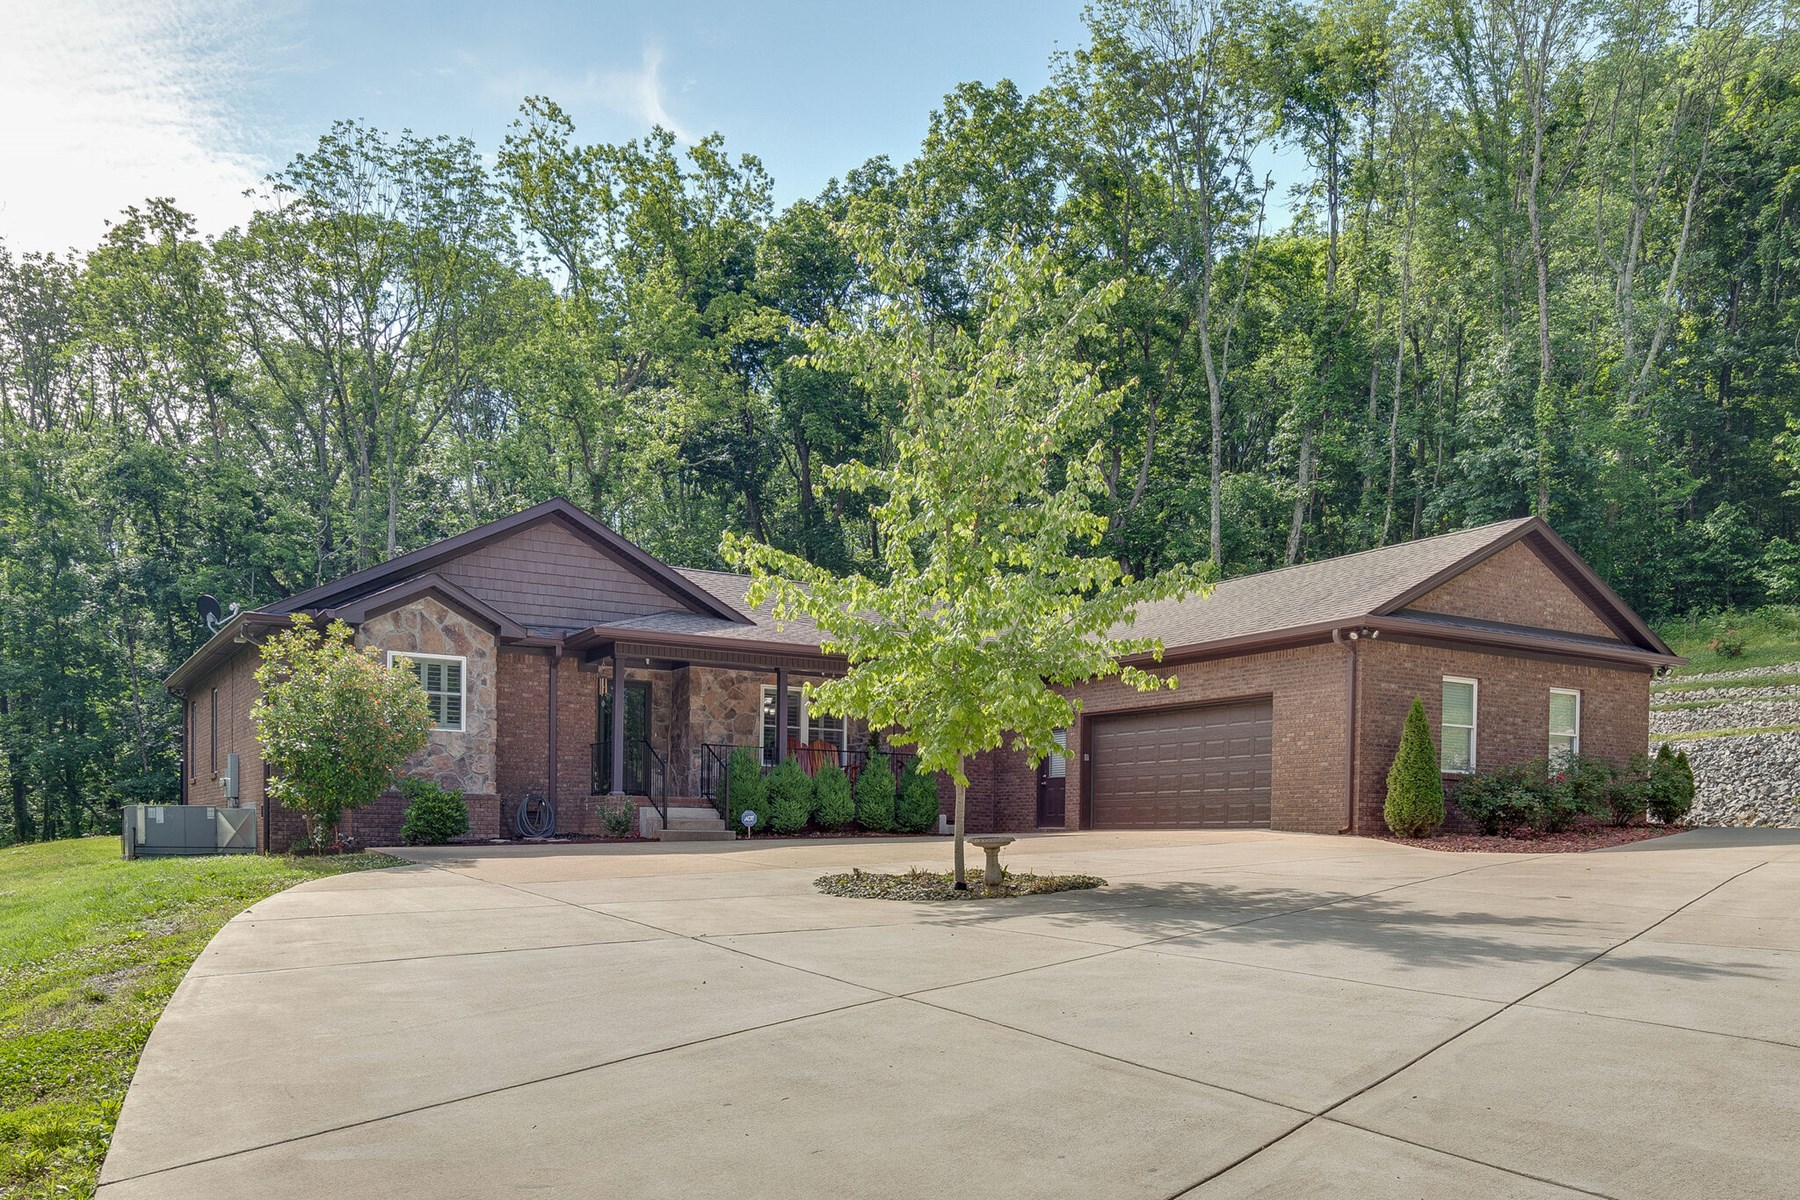 Custom Built Home with Acreage for Sale in Maury County, TN